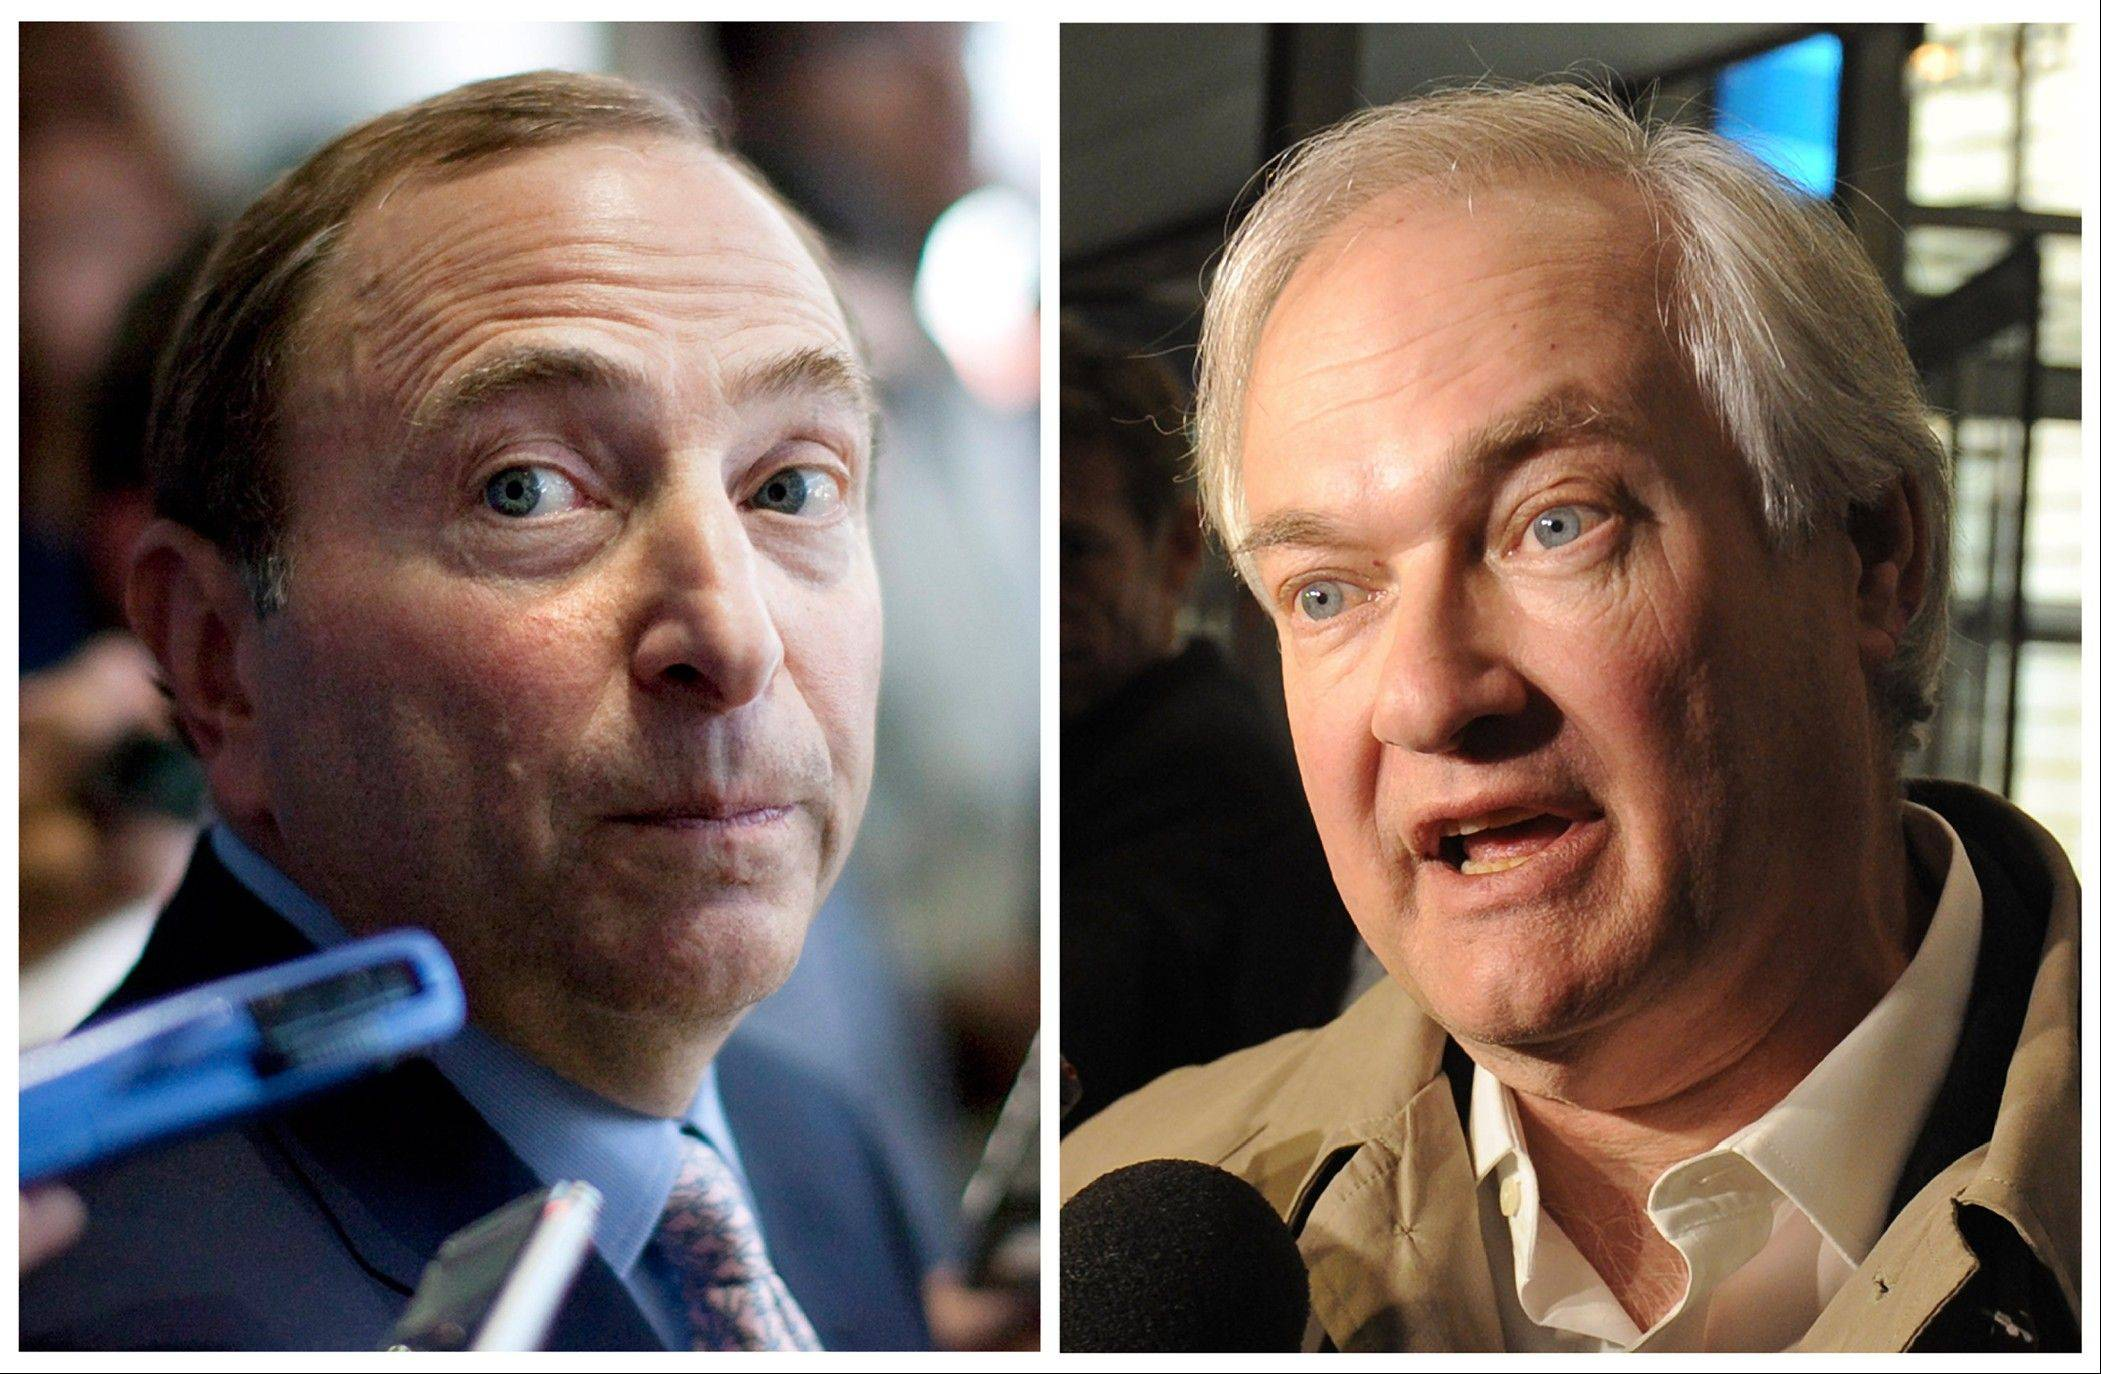 NHL Commissioner Gary Bettman, left, and Donald Fehr, executive director of the NHL Players' Association, have said the NHL and the players' association reached a tentative agreement early Sunday to end a nearly four-month-old lockout that threatened to wipe out the season.